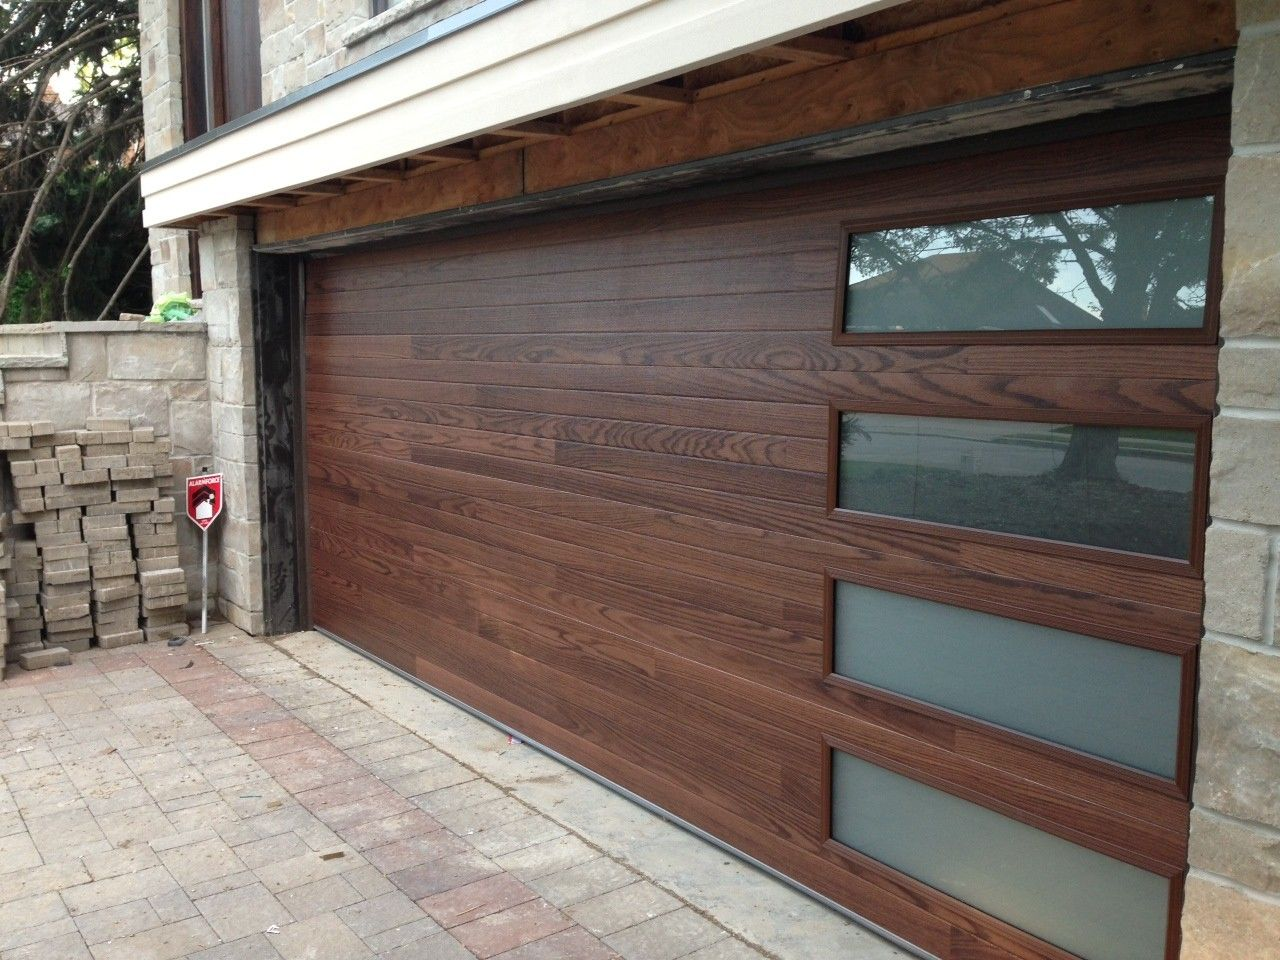 12 foot wide garage doorBest 25 Garage doors ideas on Pinterest  Garage door styles